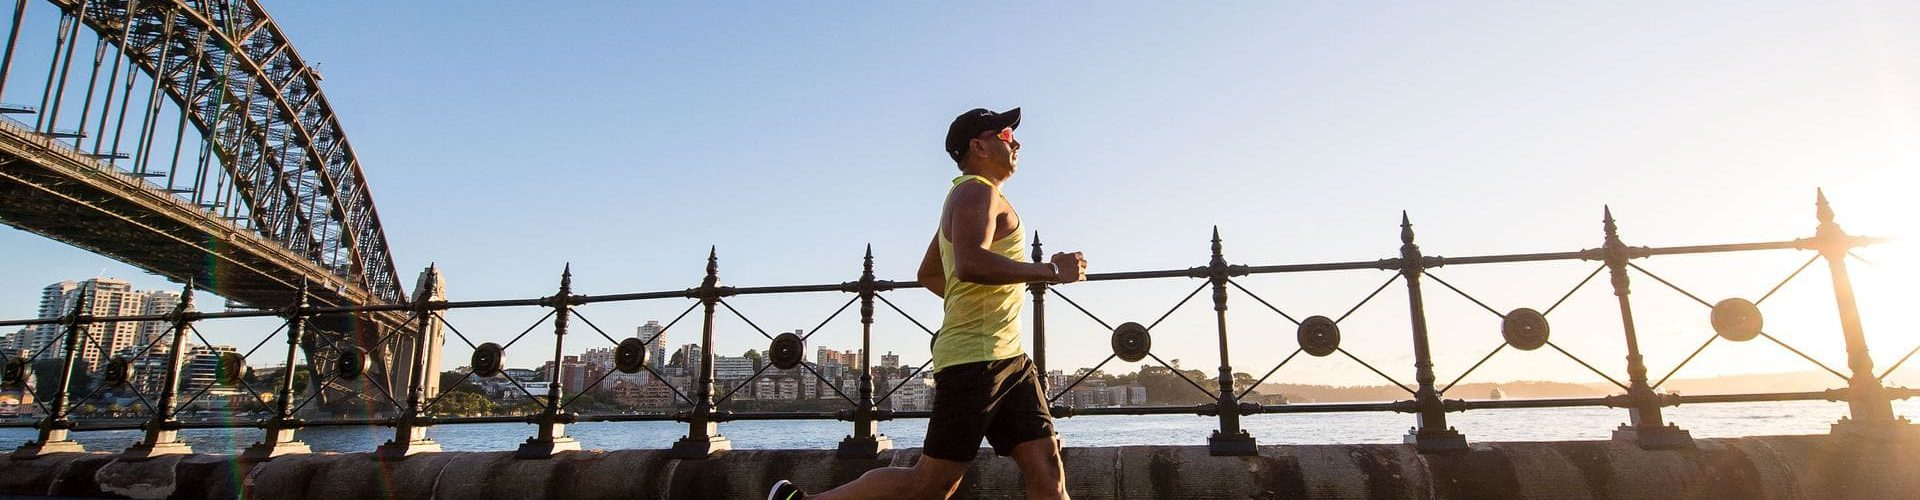 overtraining: When it Comes to Running, How Much is Too Much?